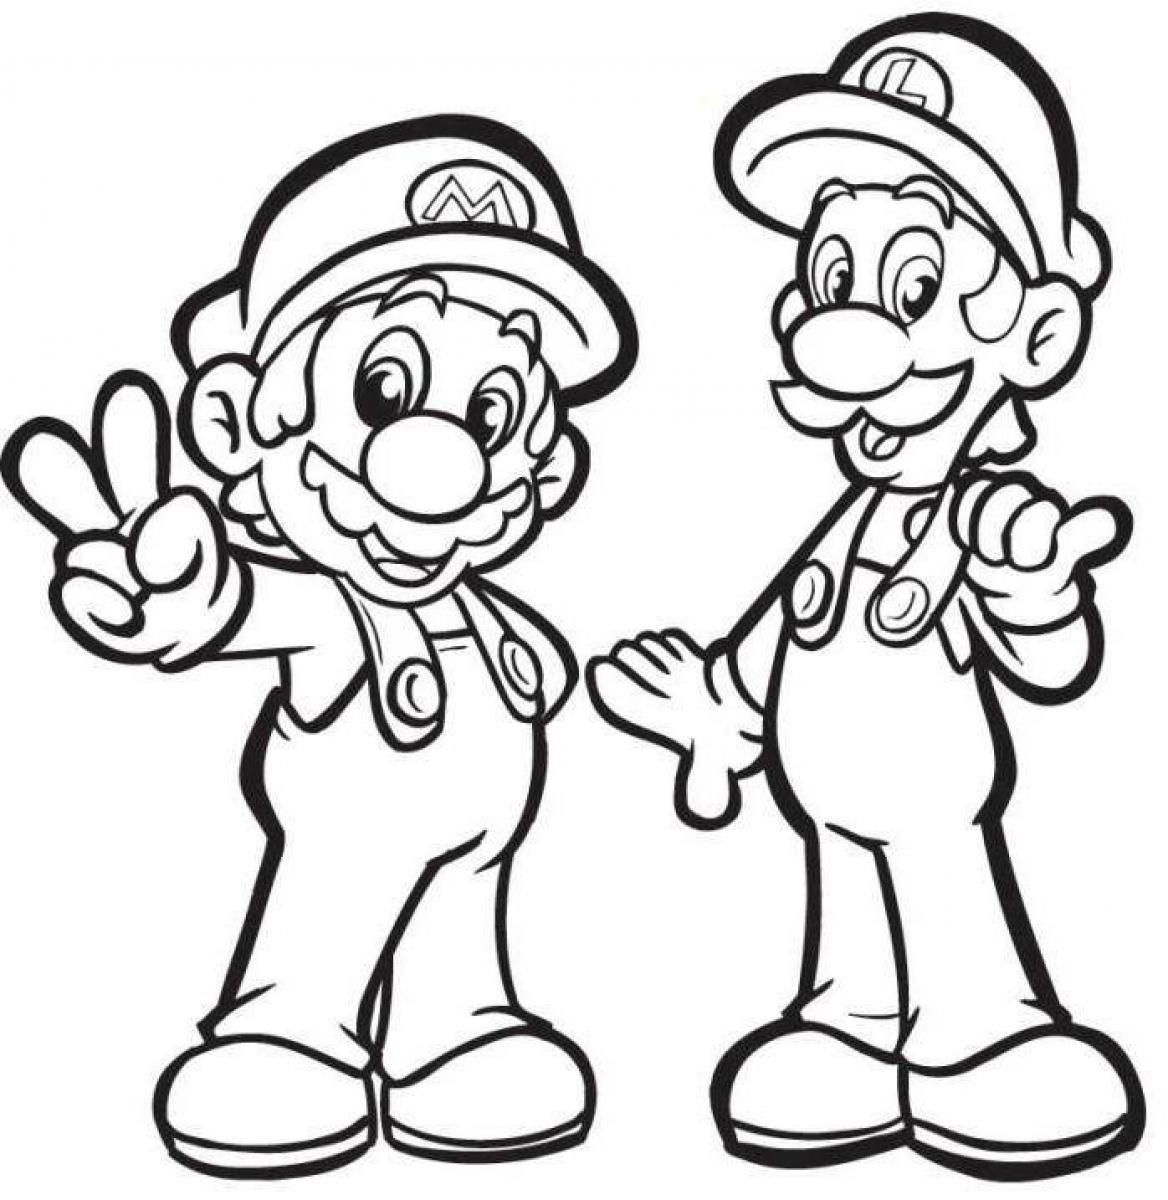 Mario and luigi coloring pages printable - Luigi Coloring Pages Printable Luigi Coloring Pages Free Luigi Coloring Pages Online Luigi